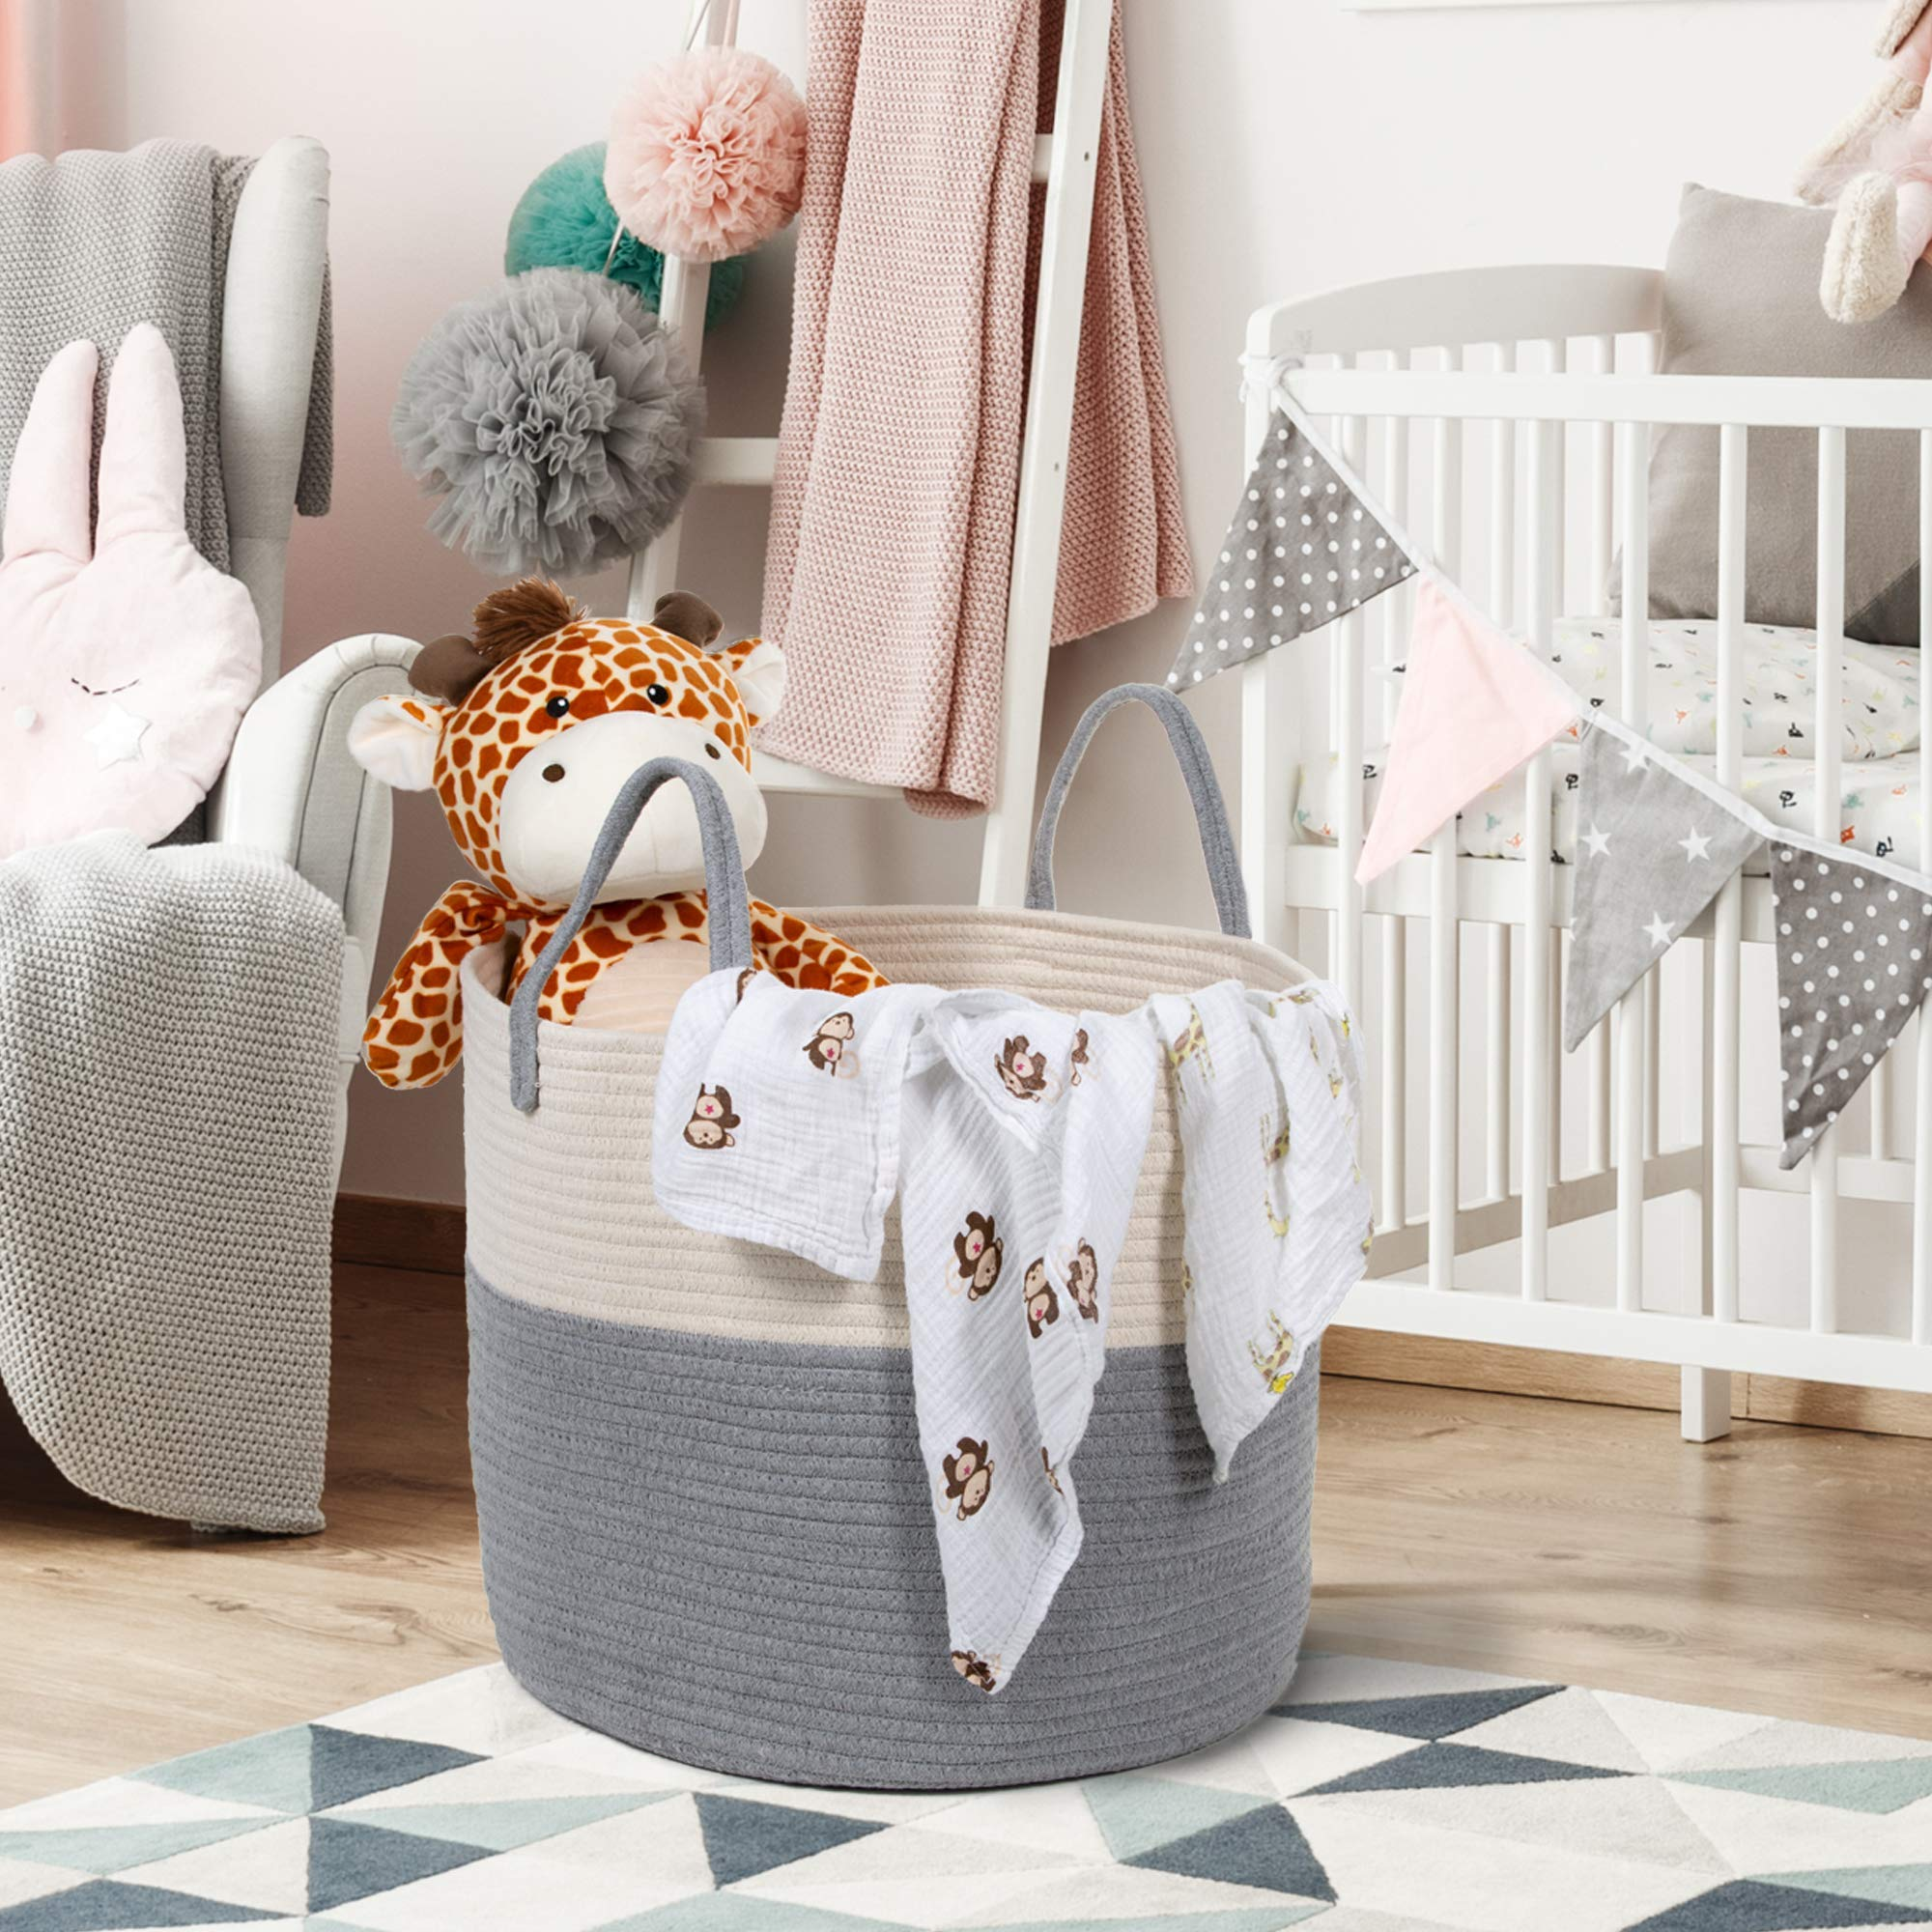 Extra Large Cotton Rope Basket 17 x 14.7 with Handles, for Baby Laundry Basket Woven Blanket Basket Nursery Bin by YOONLIVING (Image #7)